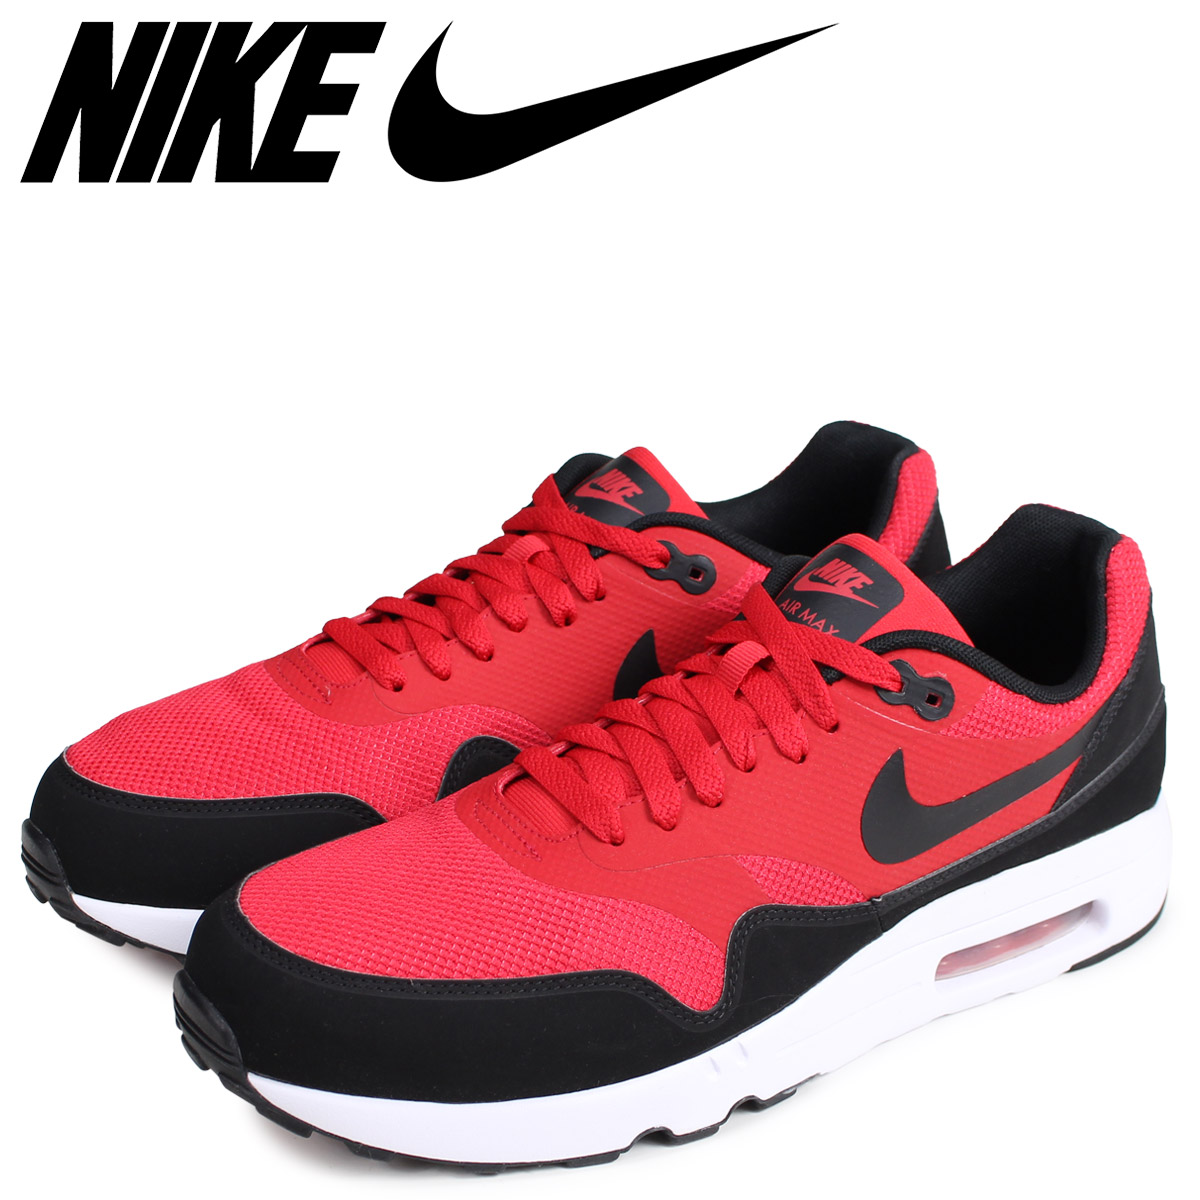 2784702a9cb NIKE Kie Ney AMAX 1 essential sneakers men AIR MAX 1 ULTRA 2.0 ESSENTIAL  red 875